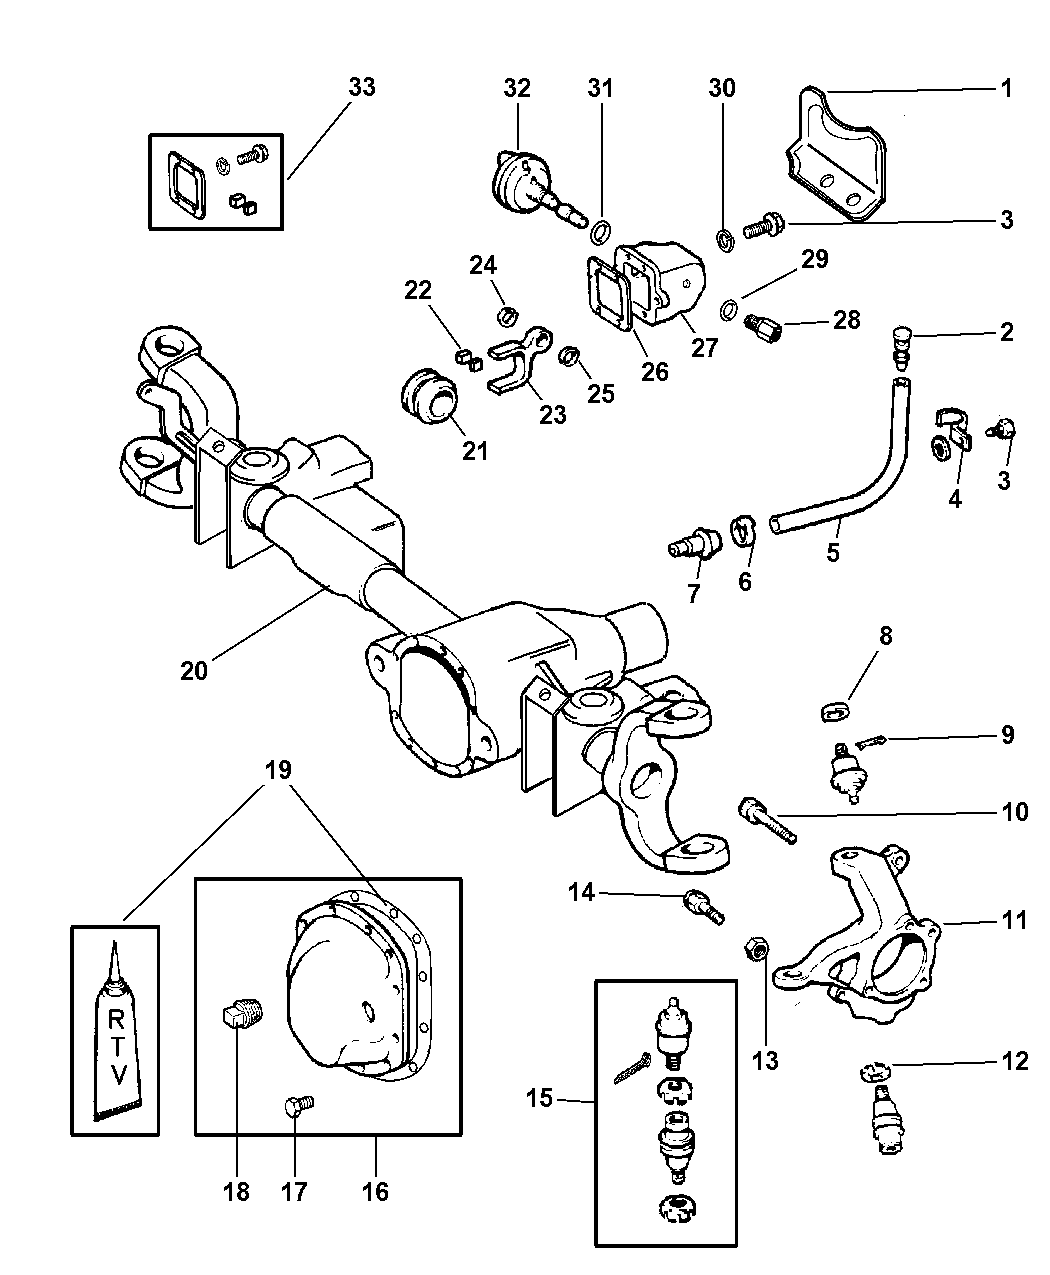 1998 Dodge Ram 1500 Front Suspension Diagram